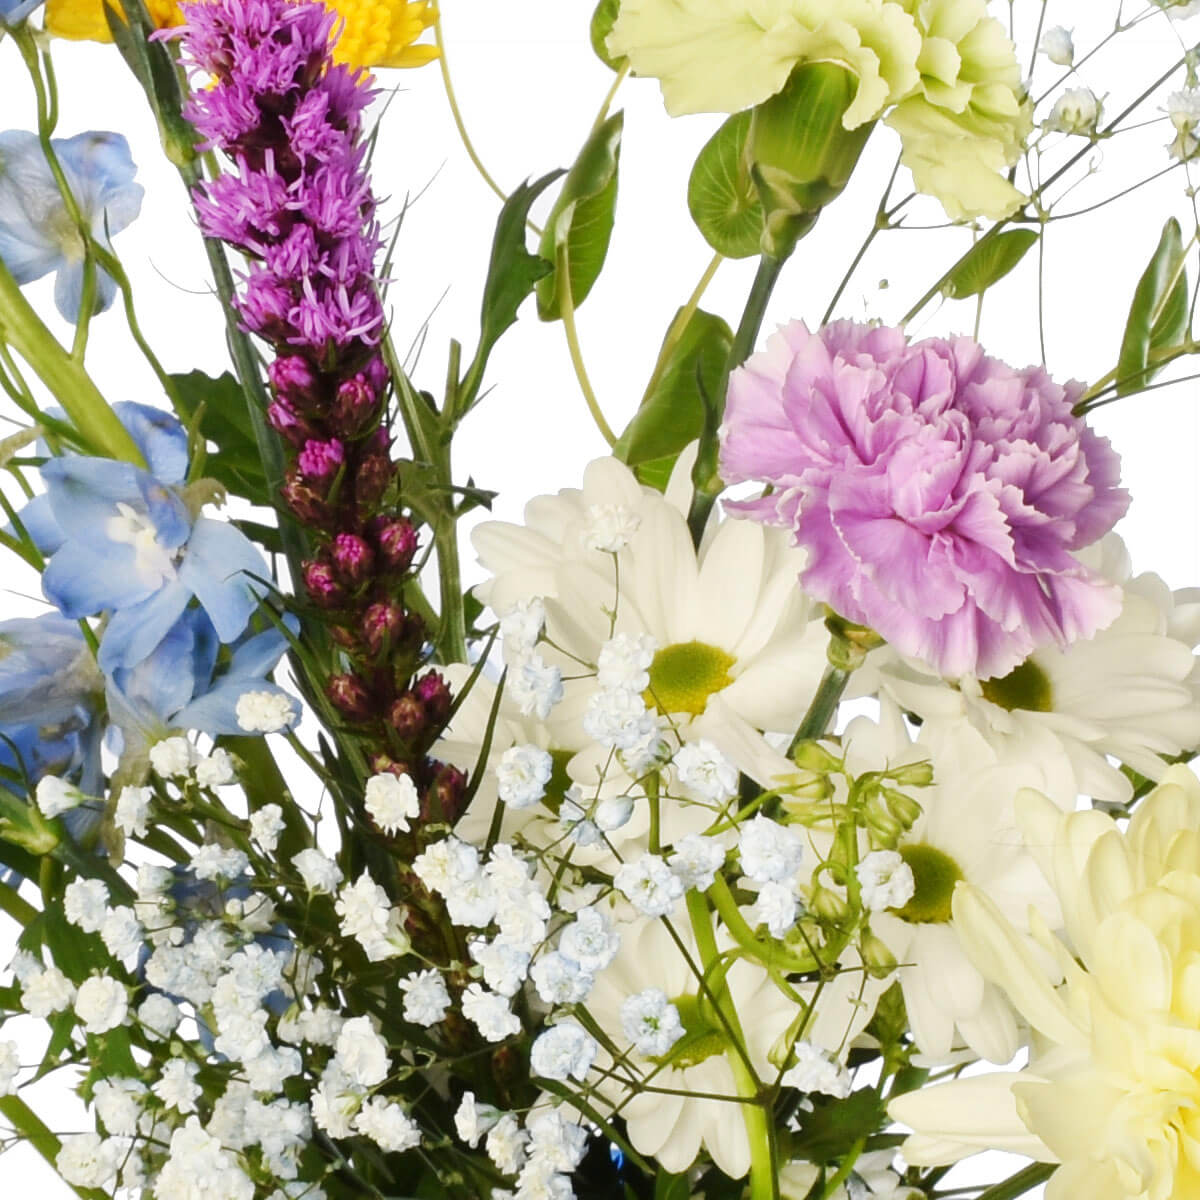 Send beautiful flower arrangements to your Mom in Burnaby from Adele Rae Florist.